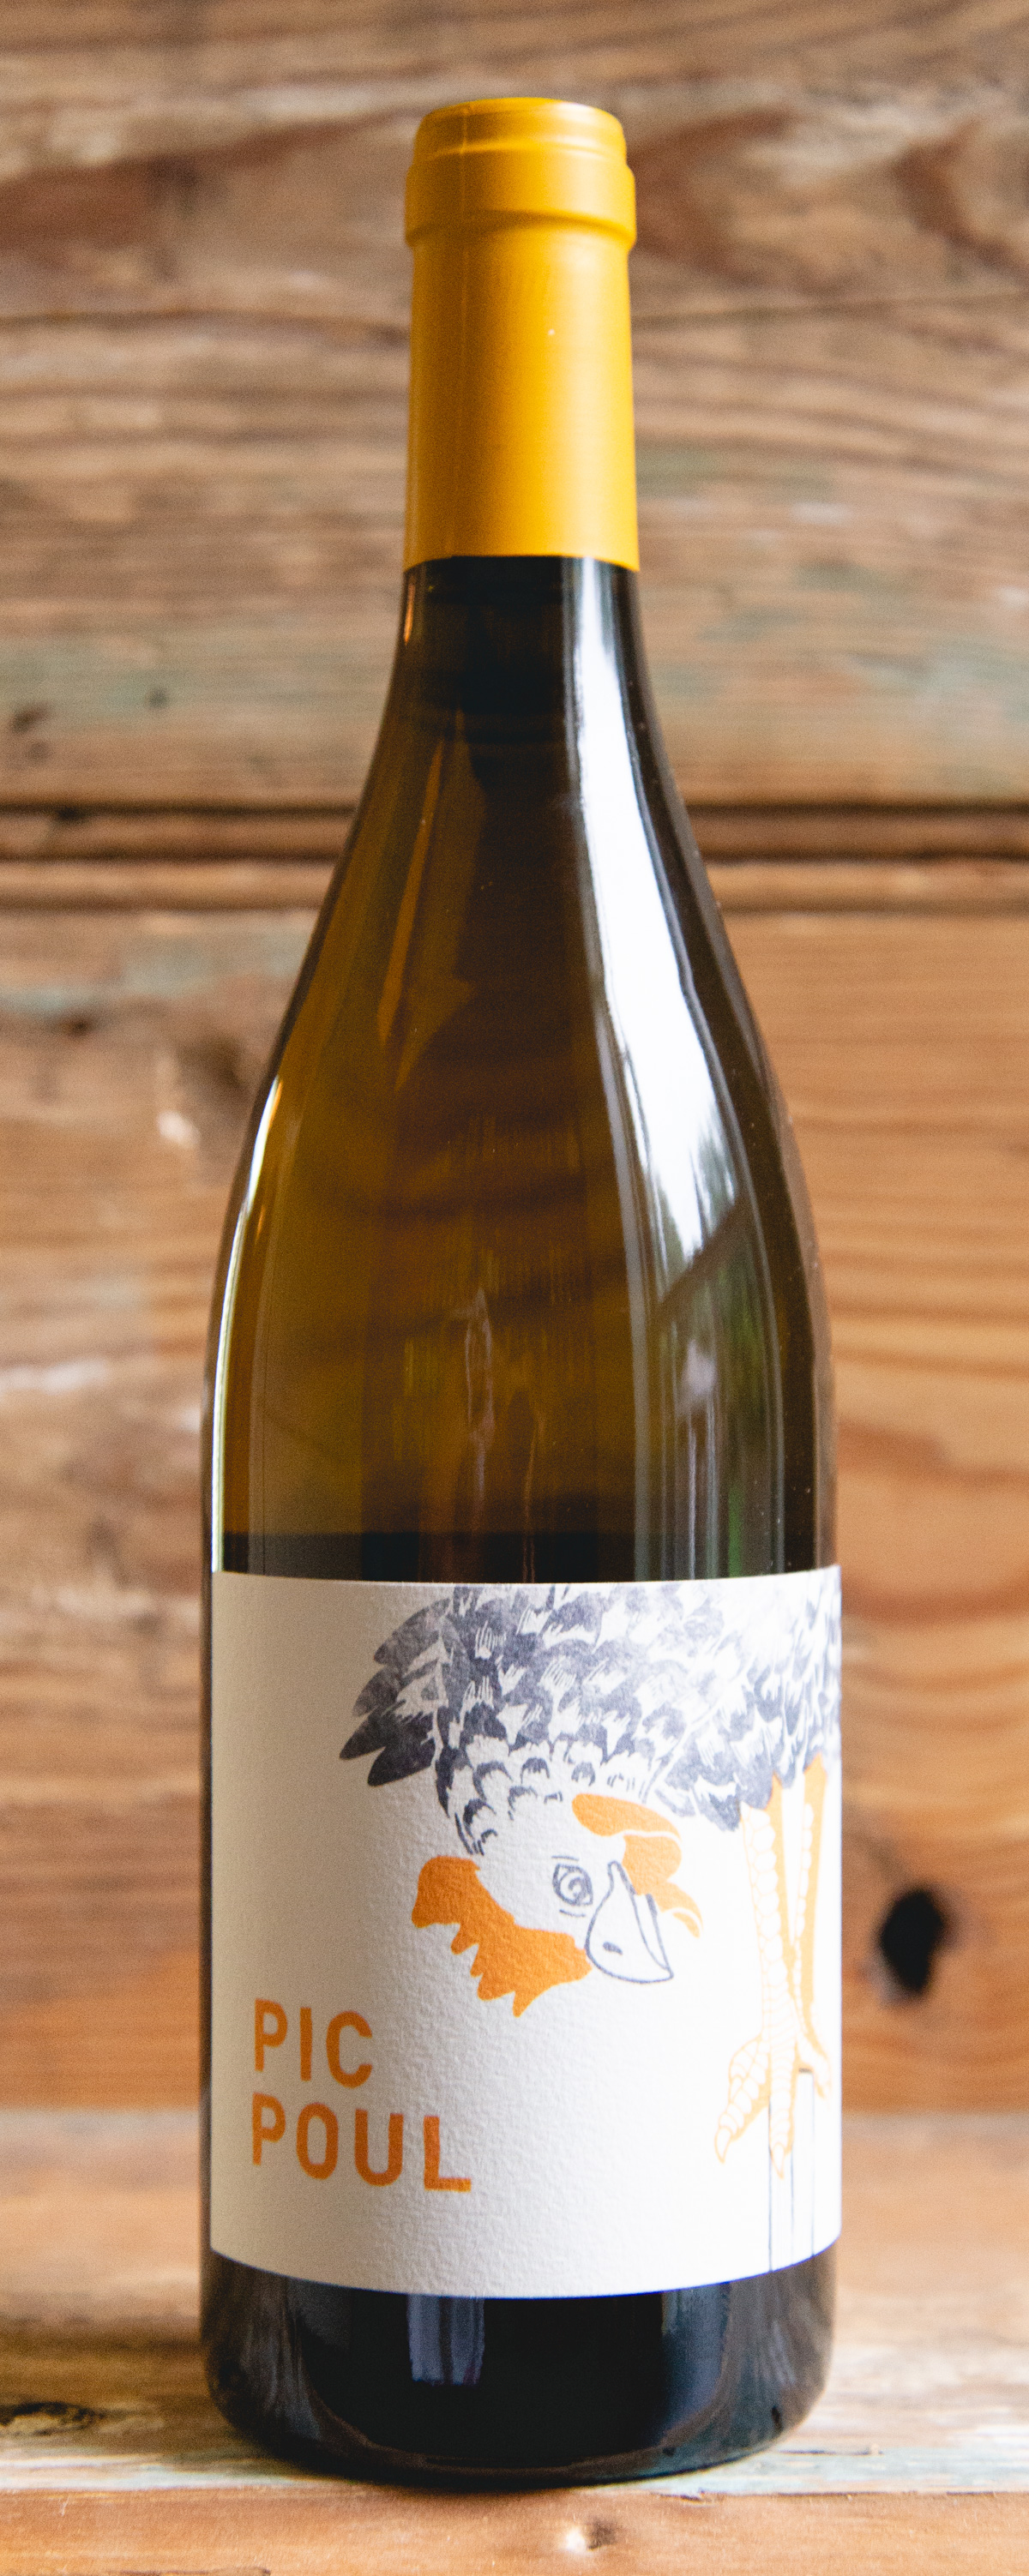 Les Équilibristes PicPoul de Pinet 2018 - Origin: France Retail: $20.95   Sale: $18.85Francois de Monval and Florent Girou aim to produce one of a kind, quirky cuvees from small estates all across France. They produce terroir-driven, organic cuvees that express a clear identity and sense of place. The results are simply stunning, as Florent (the winemaker) uses little to no added sulphites and other minimal intervention techniques to allow the grapes to truly speak for themselves. Their Picpoul is an alternative take on the ever-popular grape variety. An energetic palate displays a rich texture and bright citrus notes before a mineral-laden finish.Picpoul.Biodynamic.